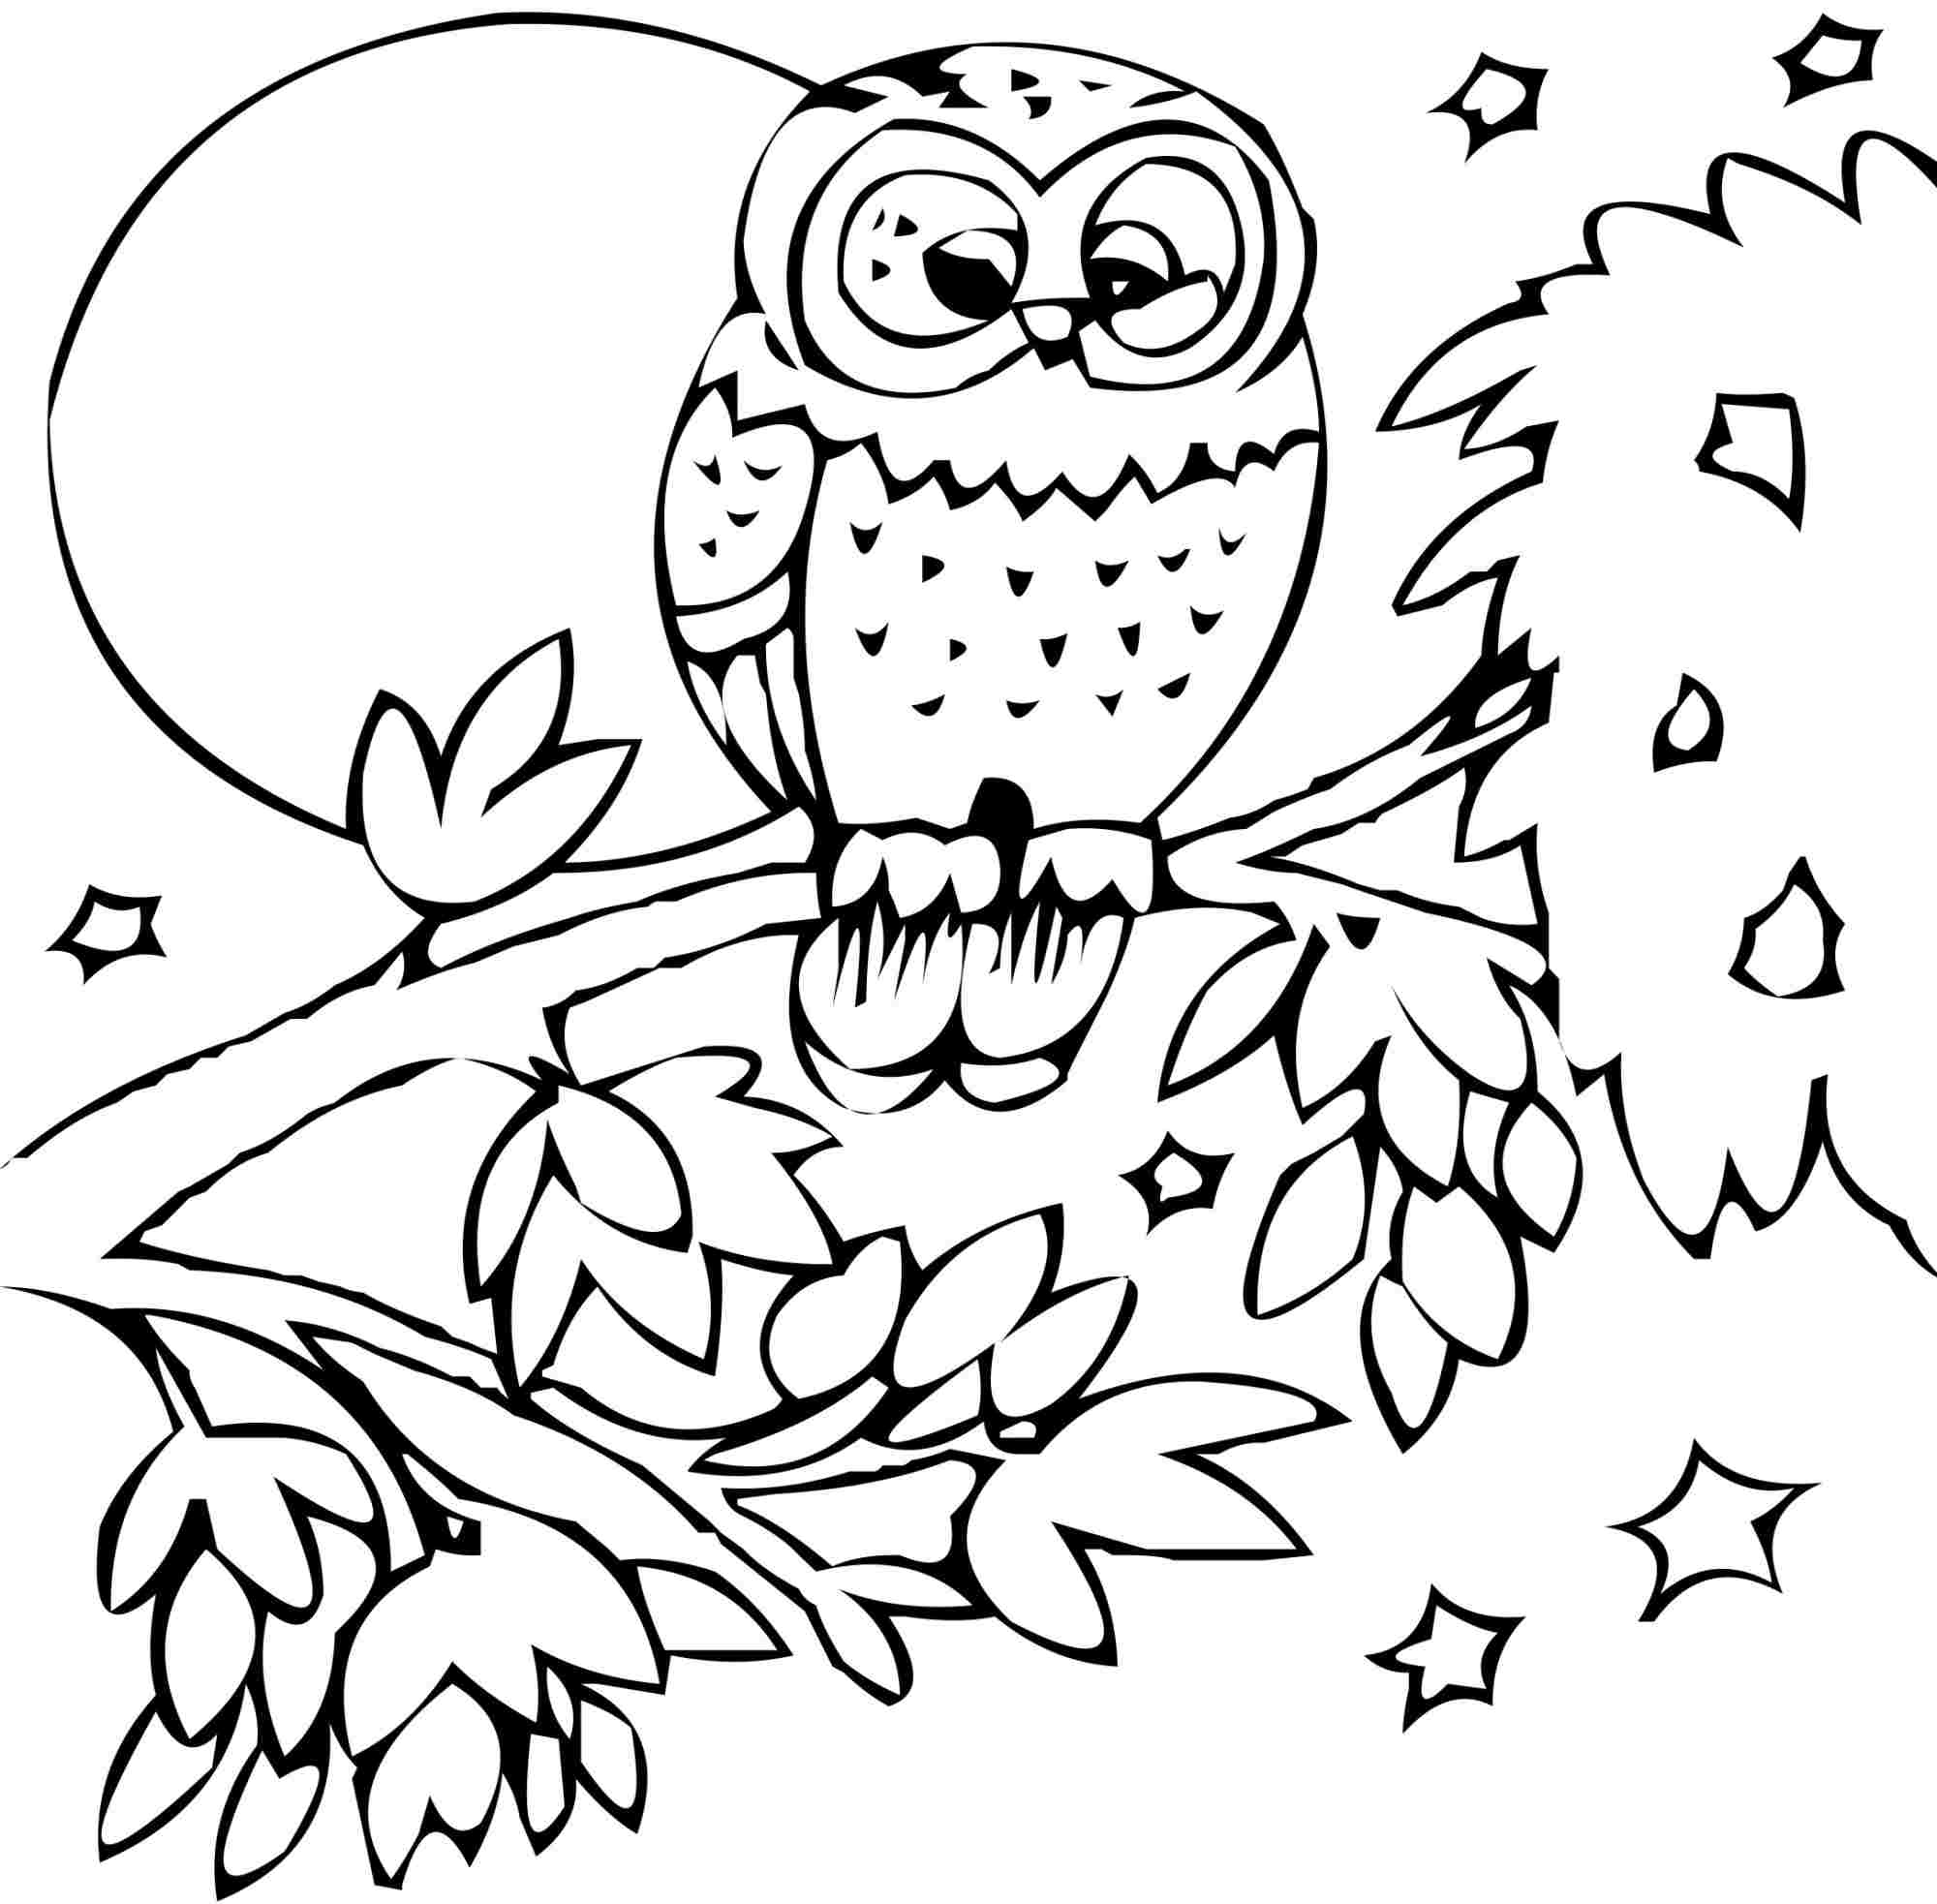 2000x1966 Childrens Animal Coloring Pages Animal Color Page For Children